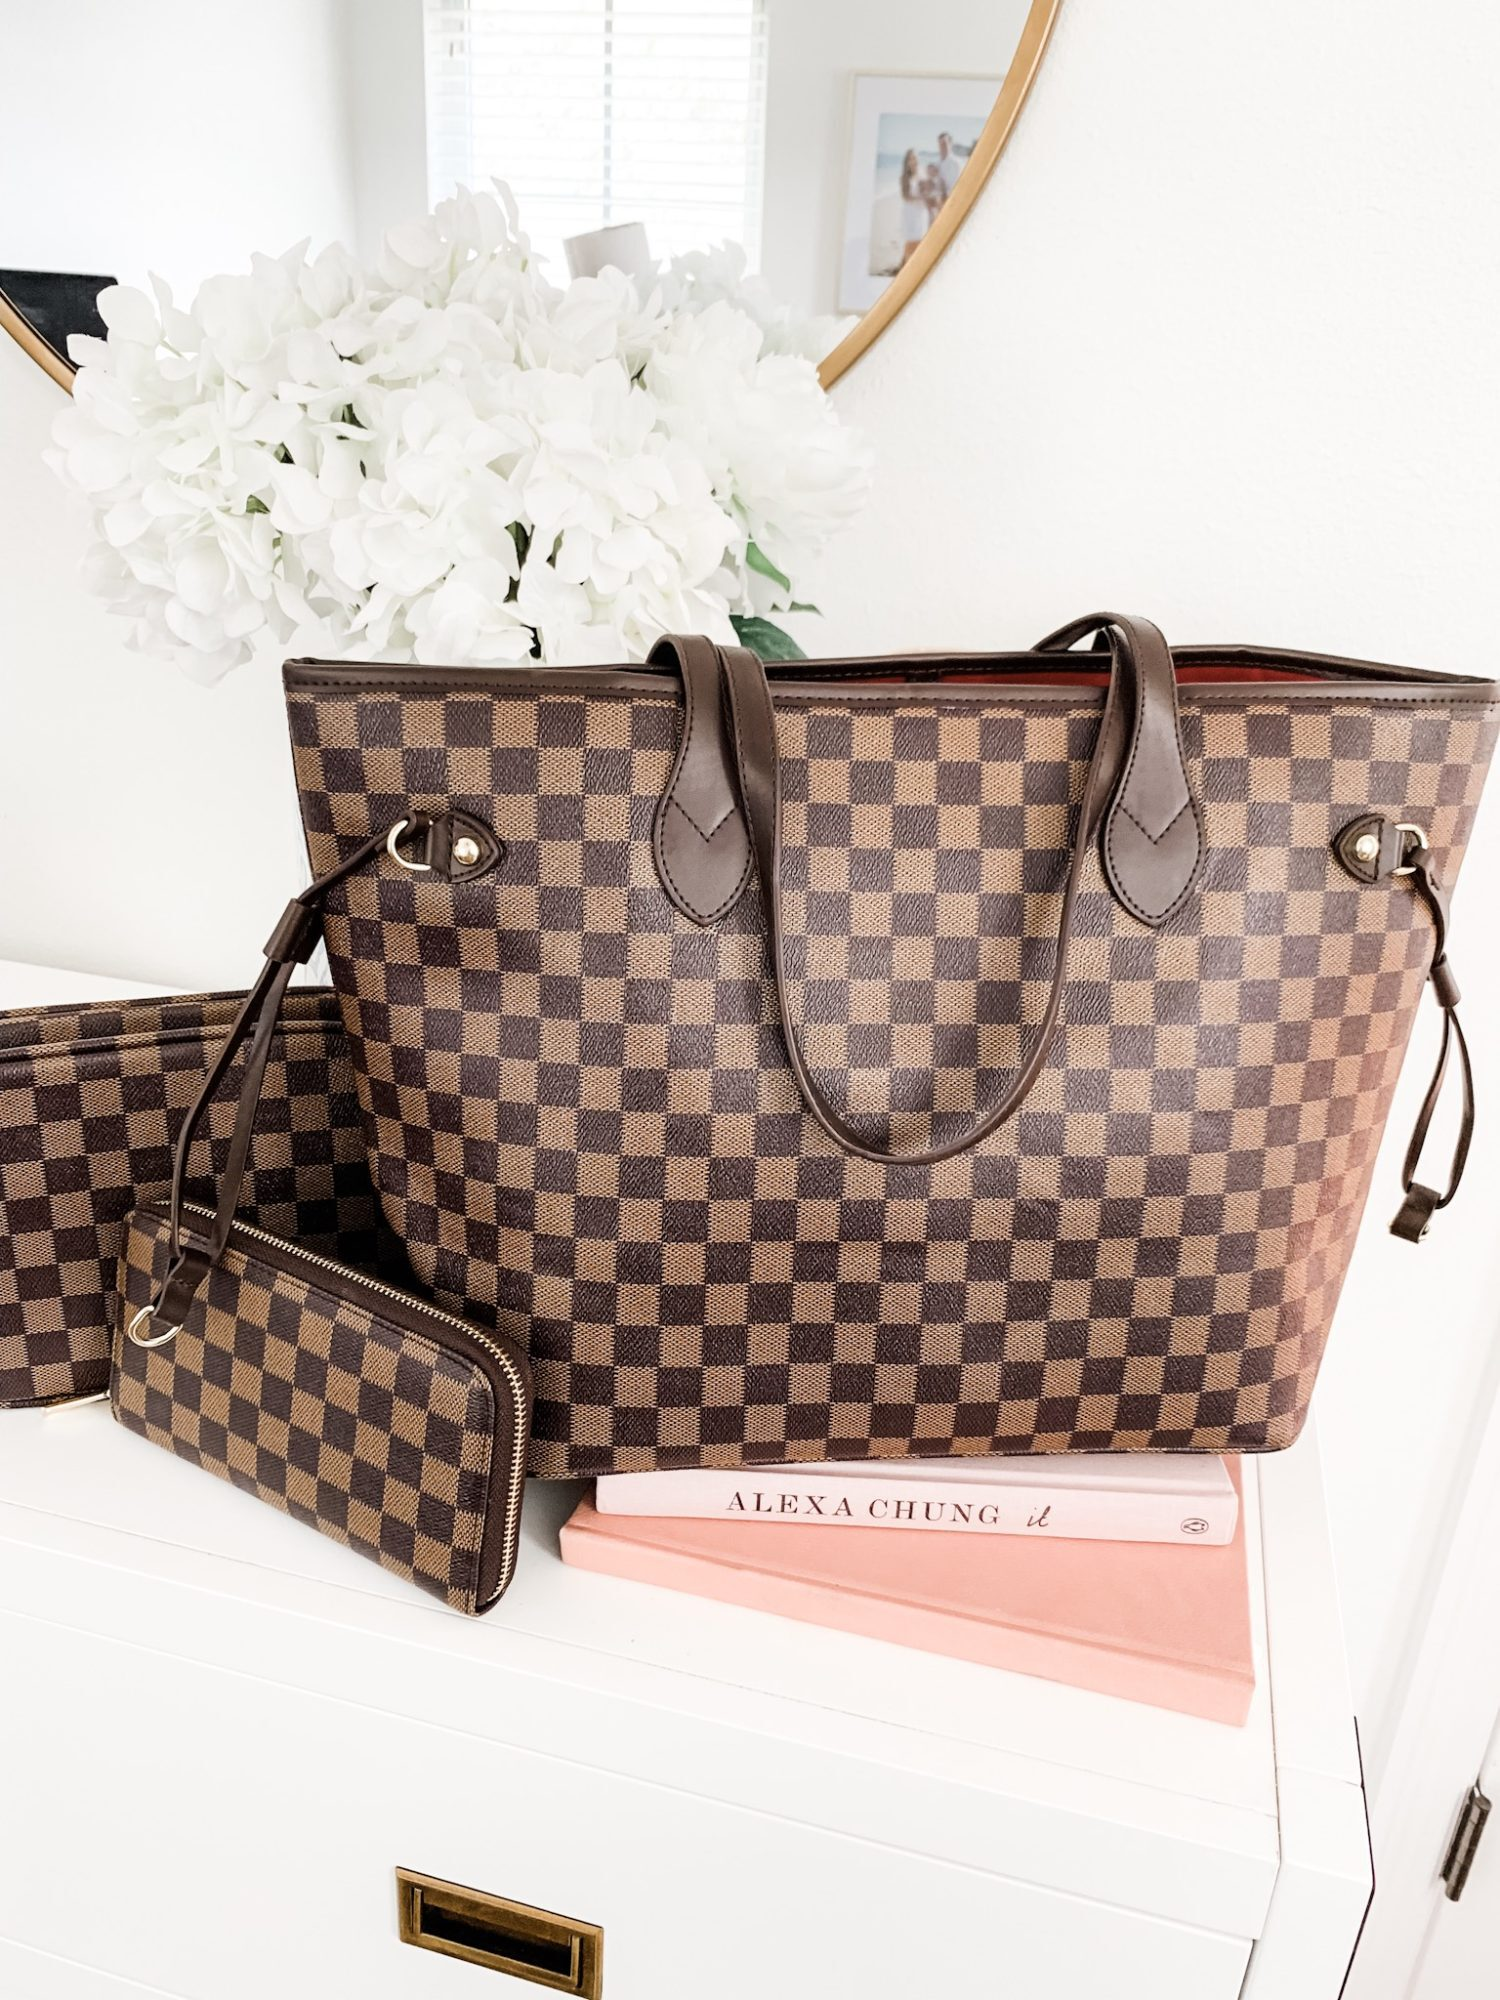 What to Buy On Amazon: the top beauty and fashion bestsellers from Amazon Prime - including the best Louis Vuitton Neverfull dupe under $50 + a matching wallet and makeup bag for under $25! | Orlando, Florida beauty and fashion blogger Ashley Brooke Nicholas